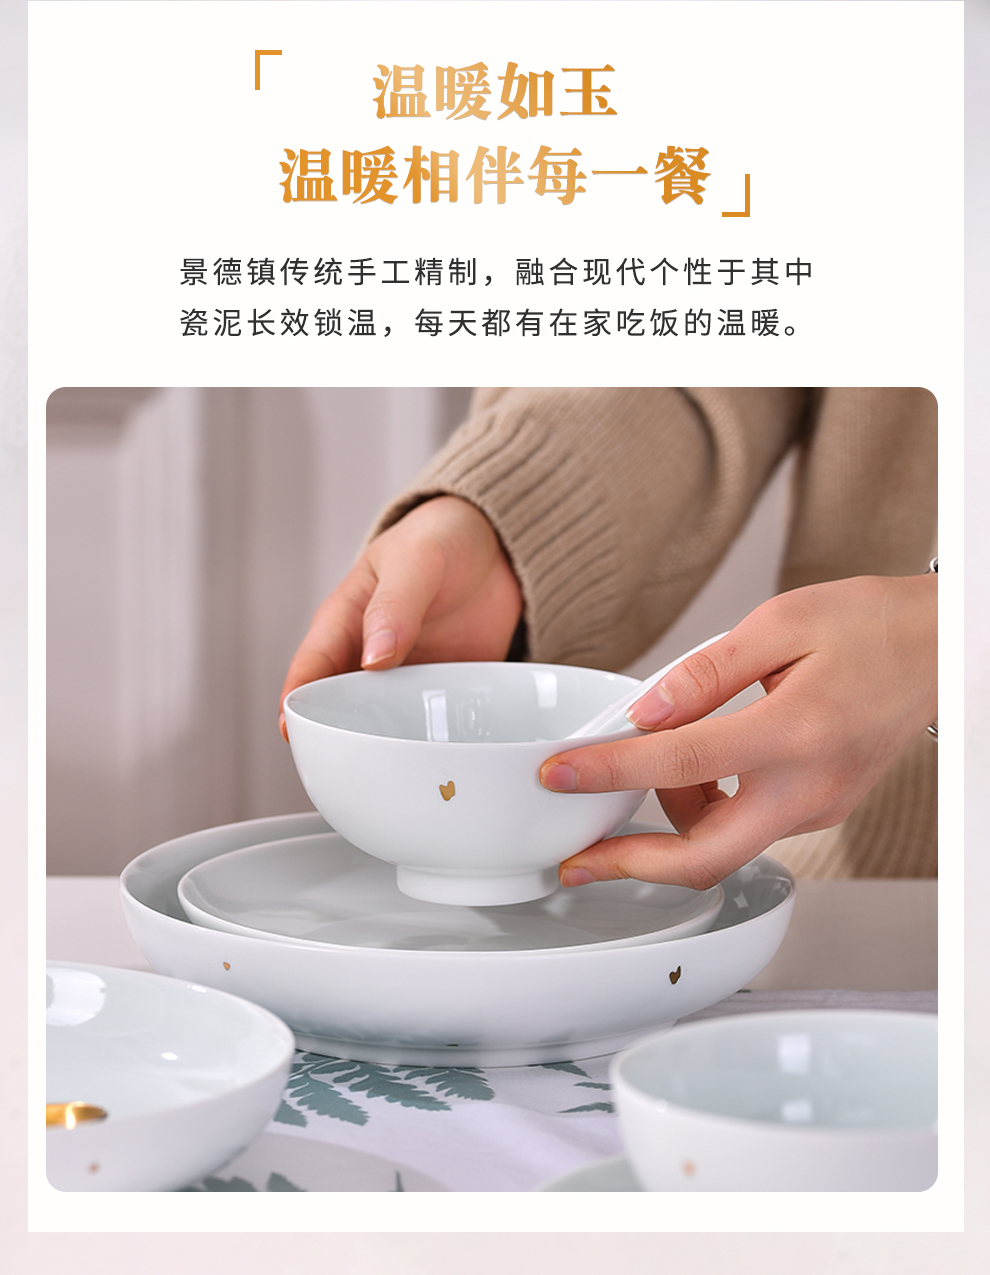 Jingdezhen flagship store gold ideas spread ceramic tableware suit household jobs in clay pot soup plate combination wining a gift